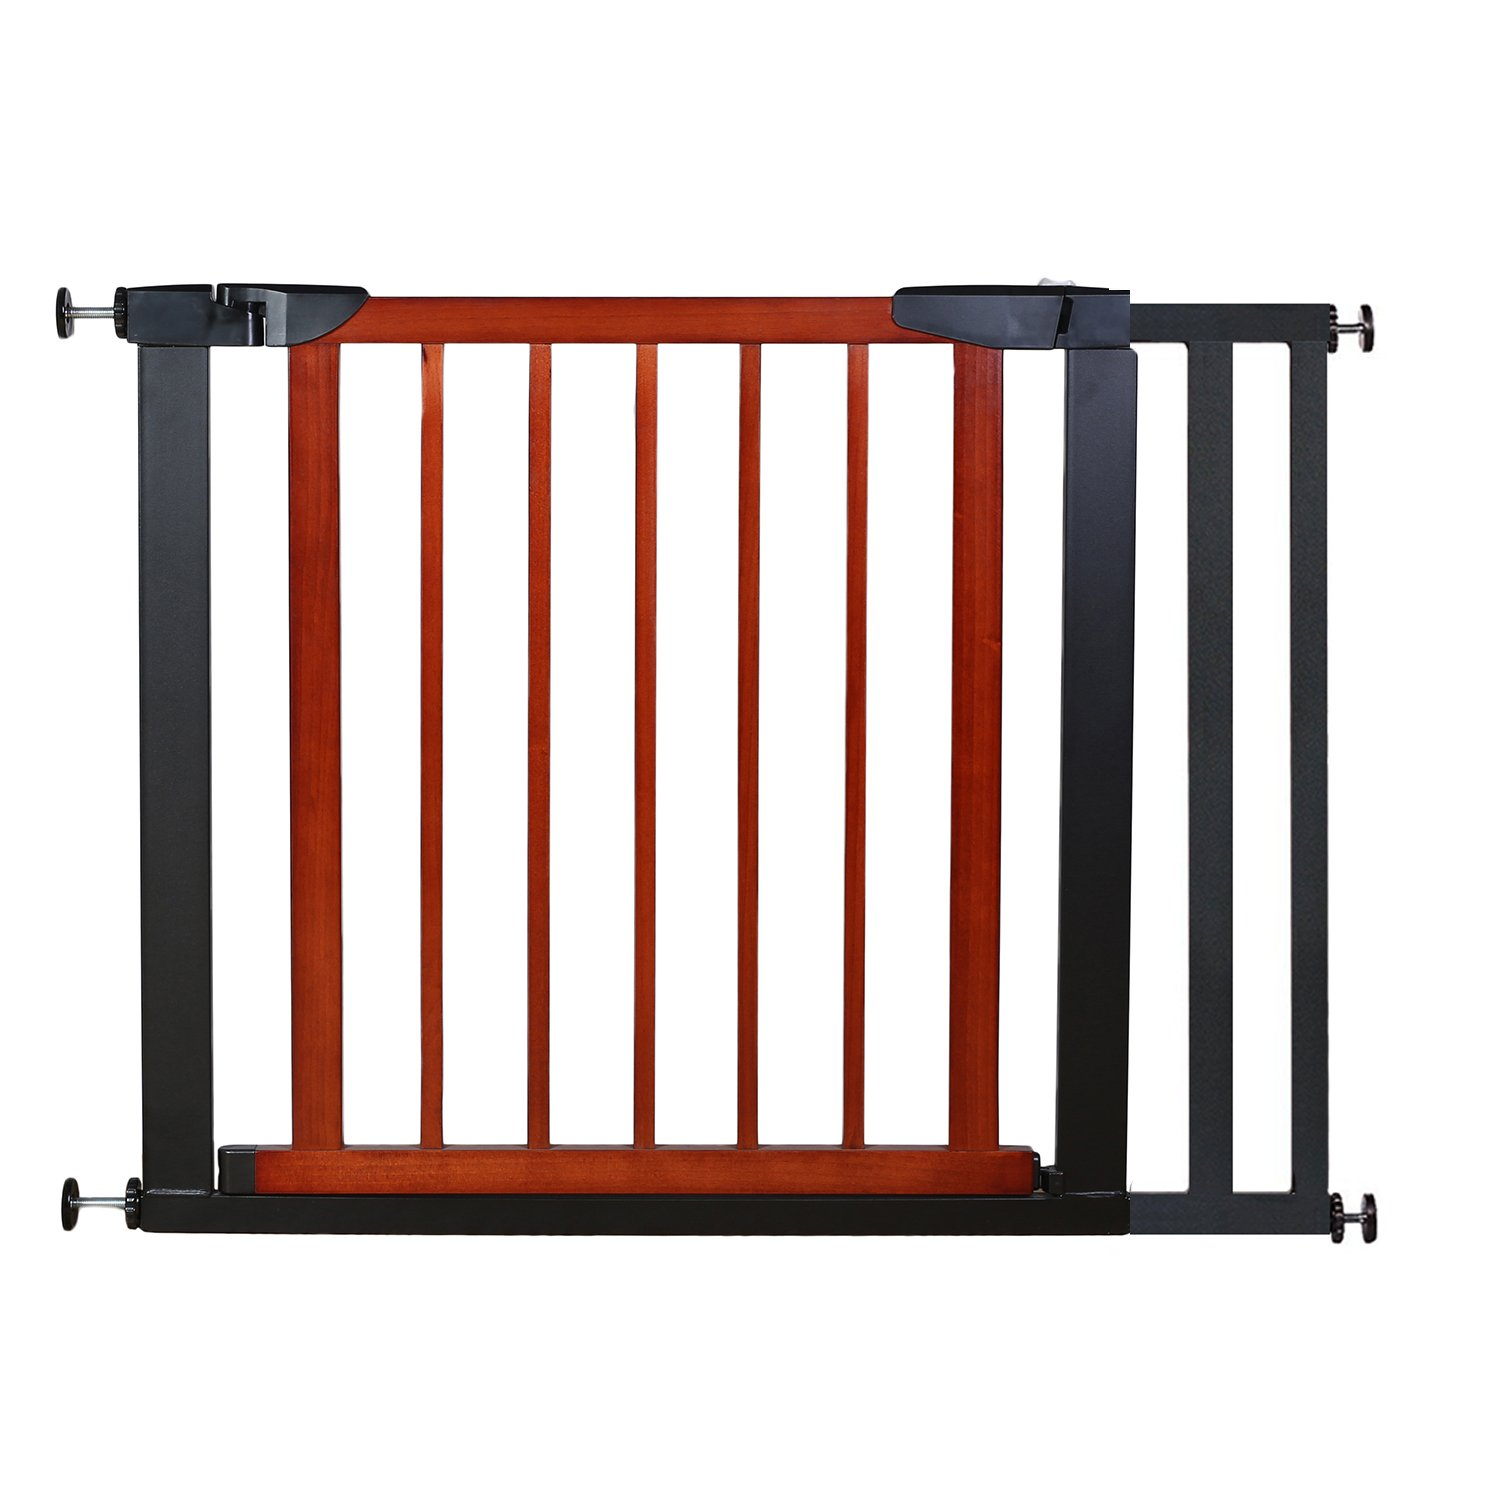 Fairy Baby Pet Baby Gate Narrow Extra Wide for Stairs Metal and Wood Pressure Mounted Safety Walk Through Gate,Fit Spaces 59.84 -62.60